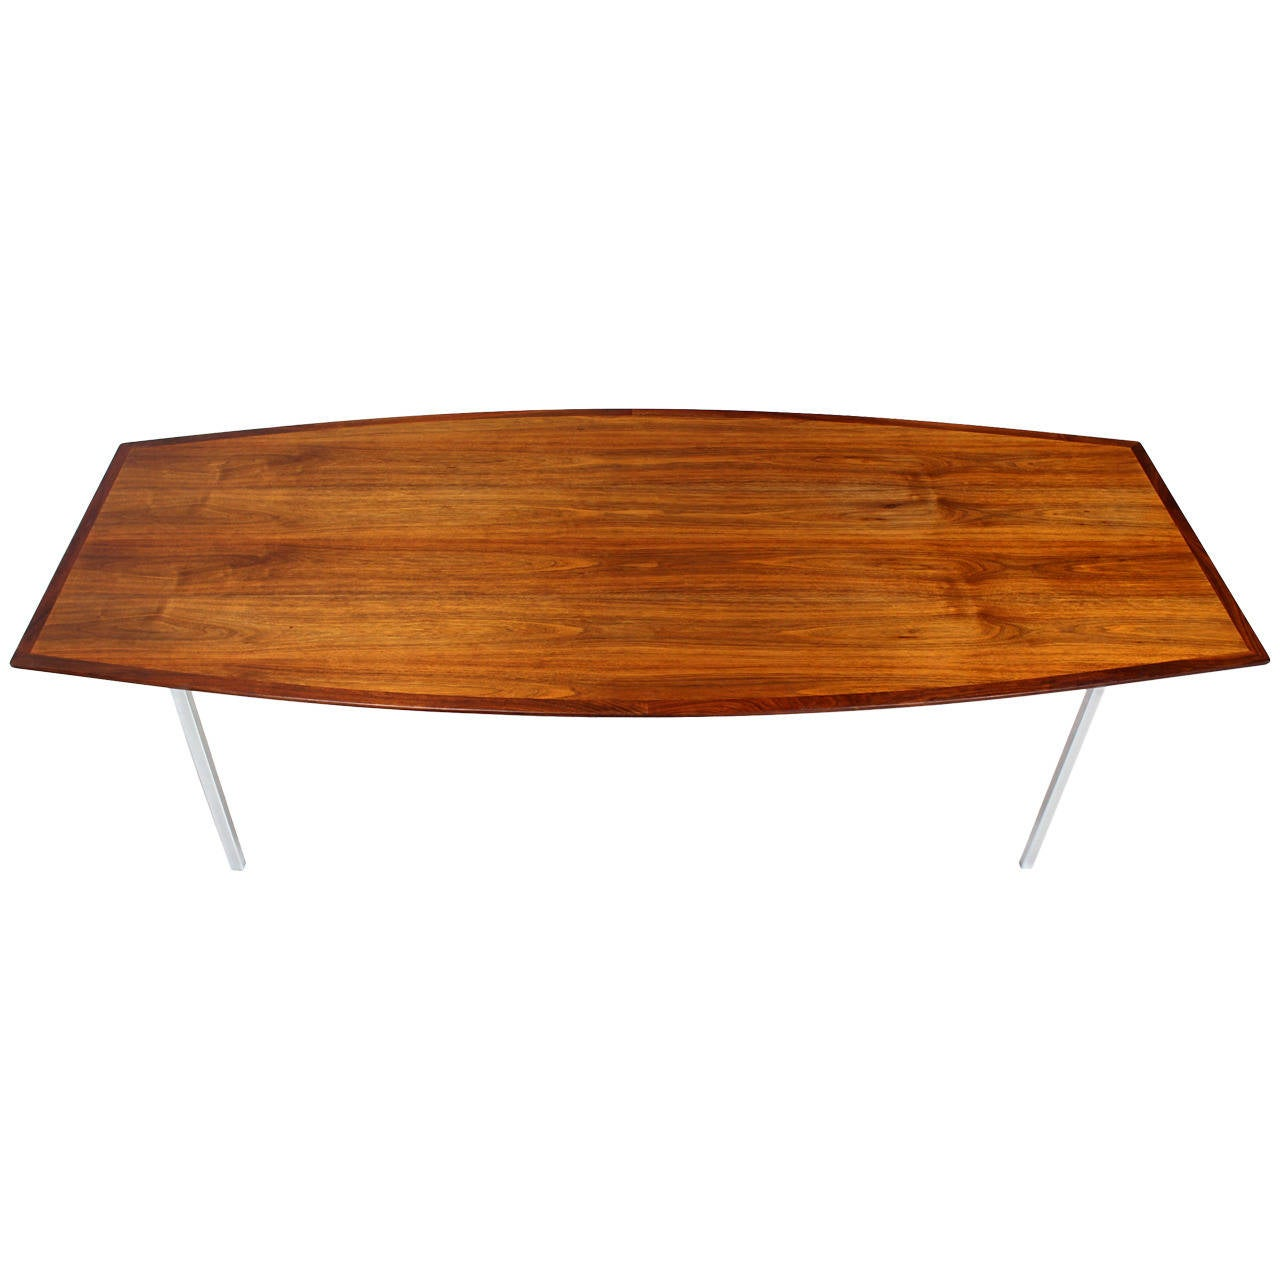 Glass conference table for sale - 8 Feet Long Walnut Boat Shape Dining Conference Table On Chrome Base Mid Century 1